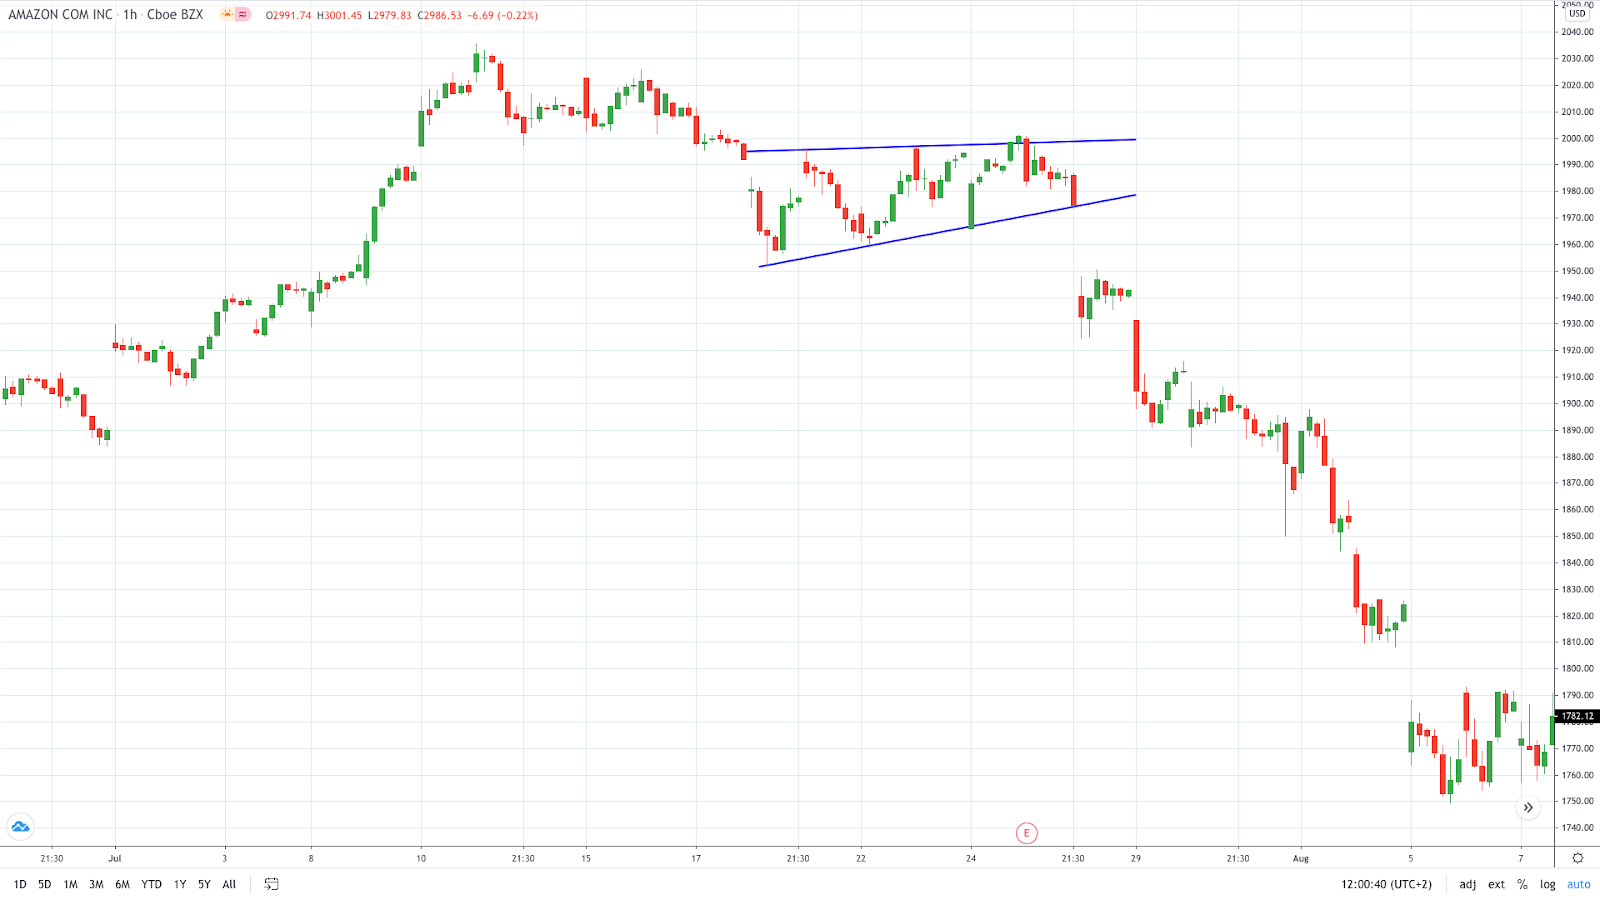 A descending wedge - Amazon daily chart (Source: TradingView)